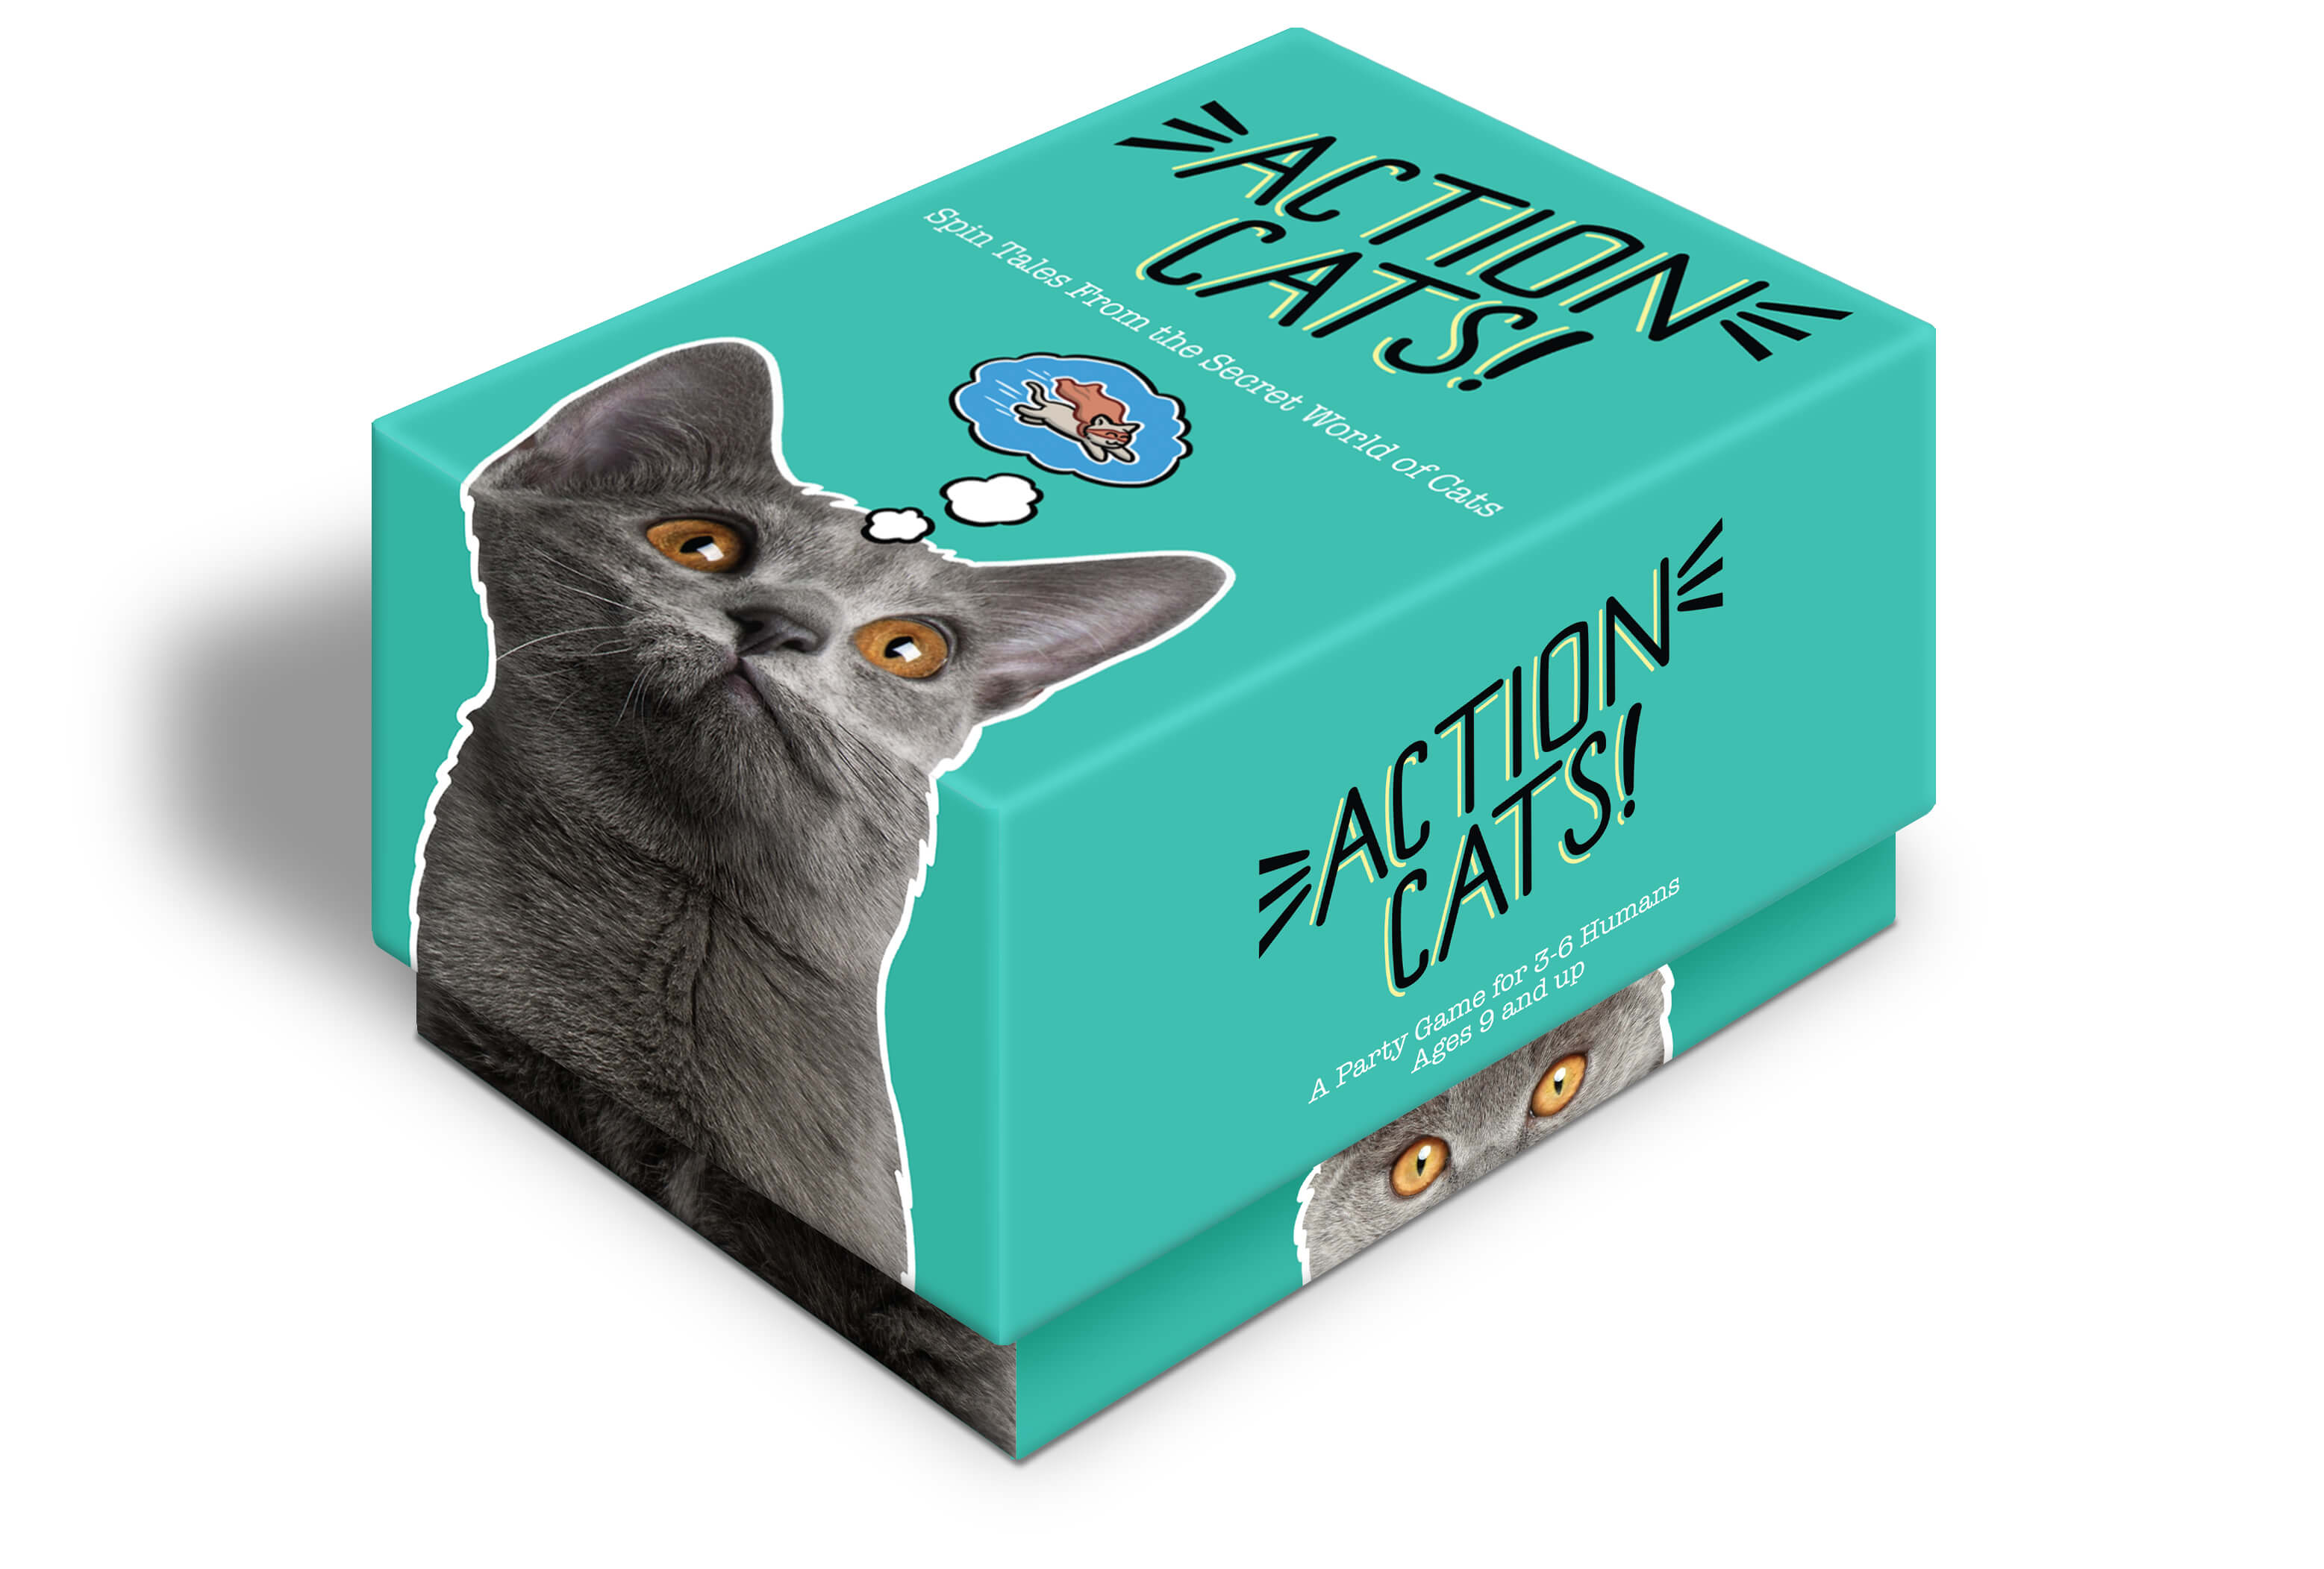 Action Cats box